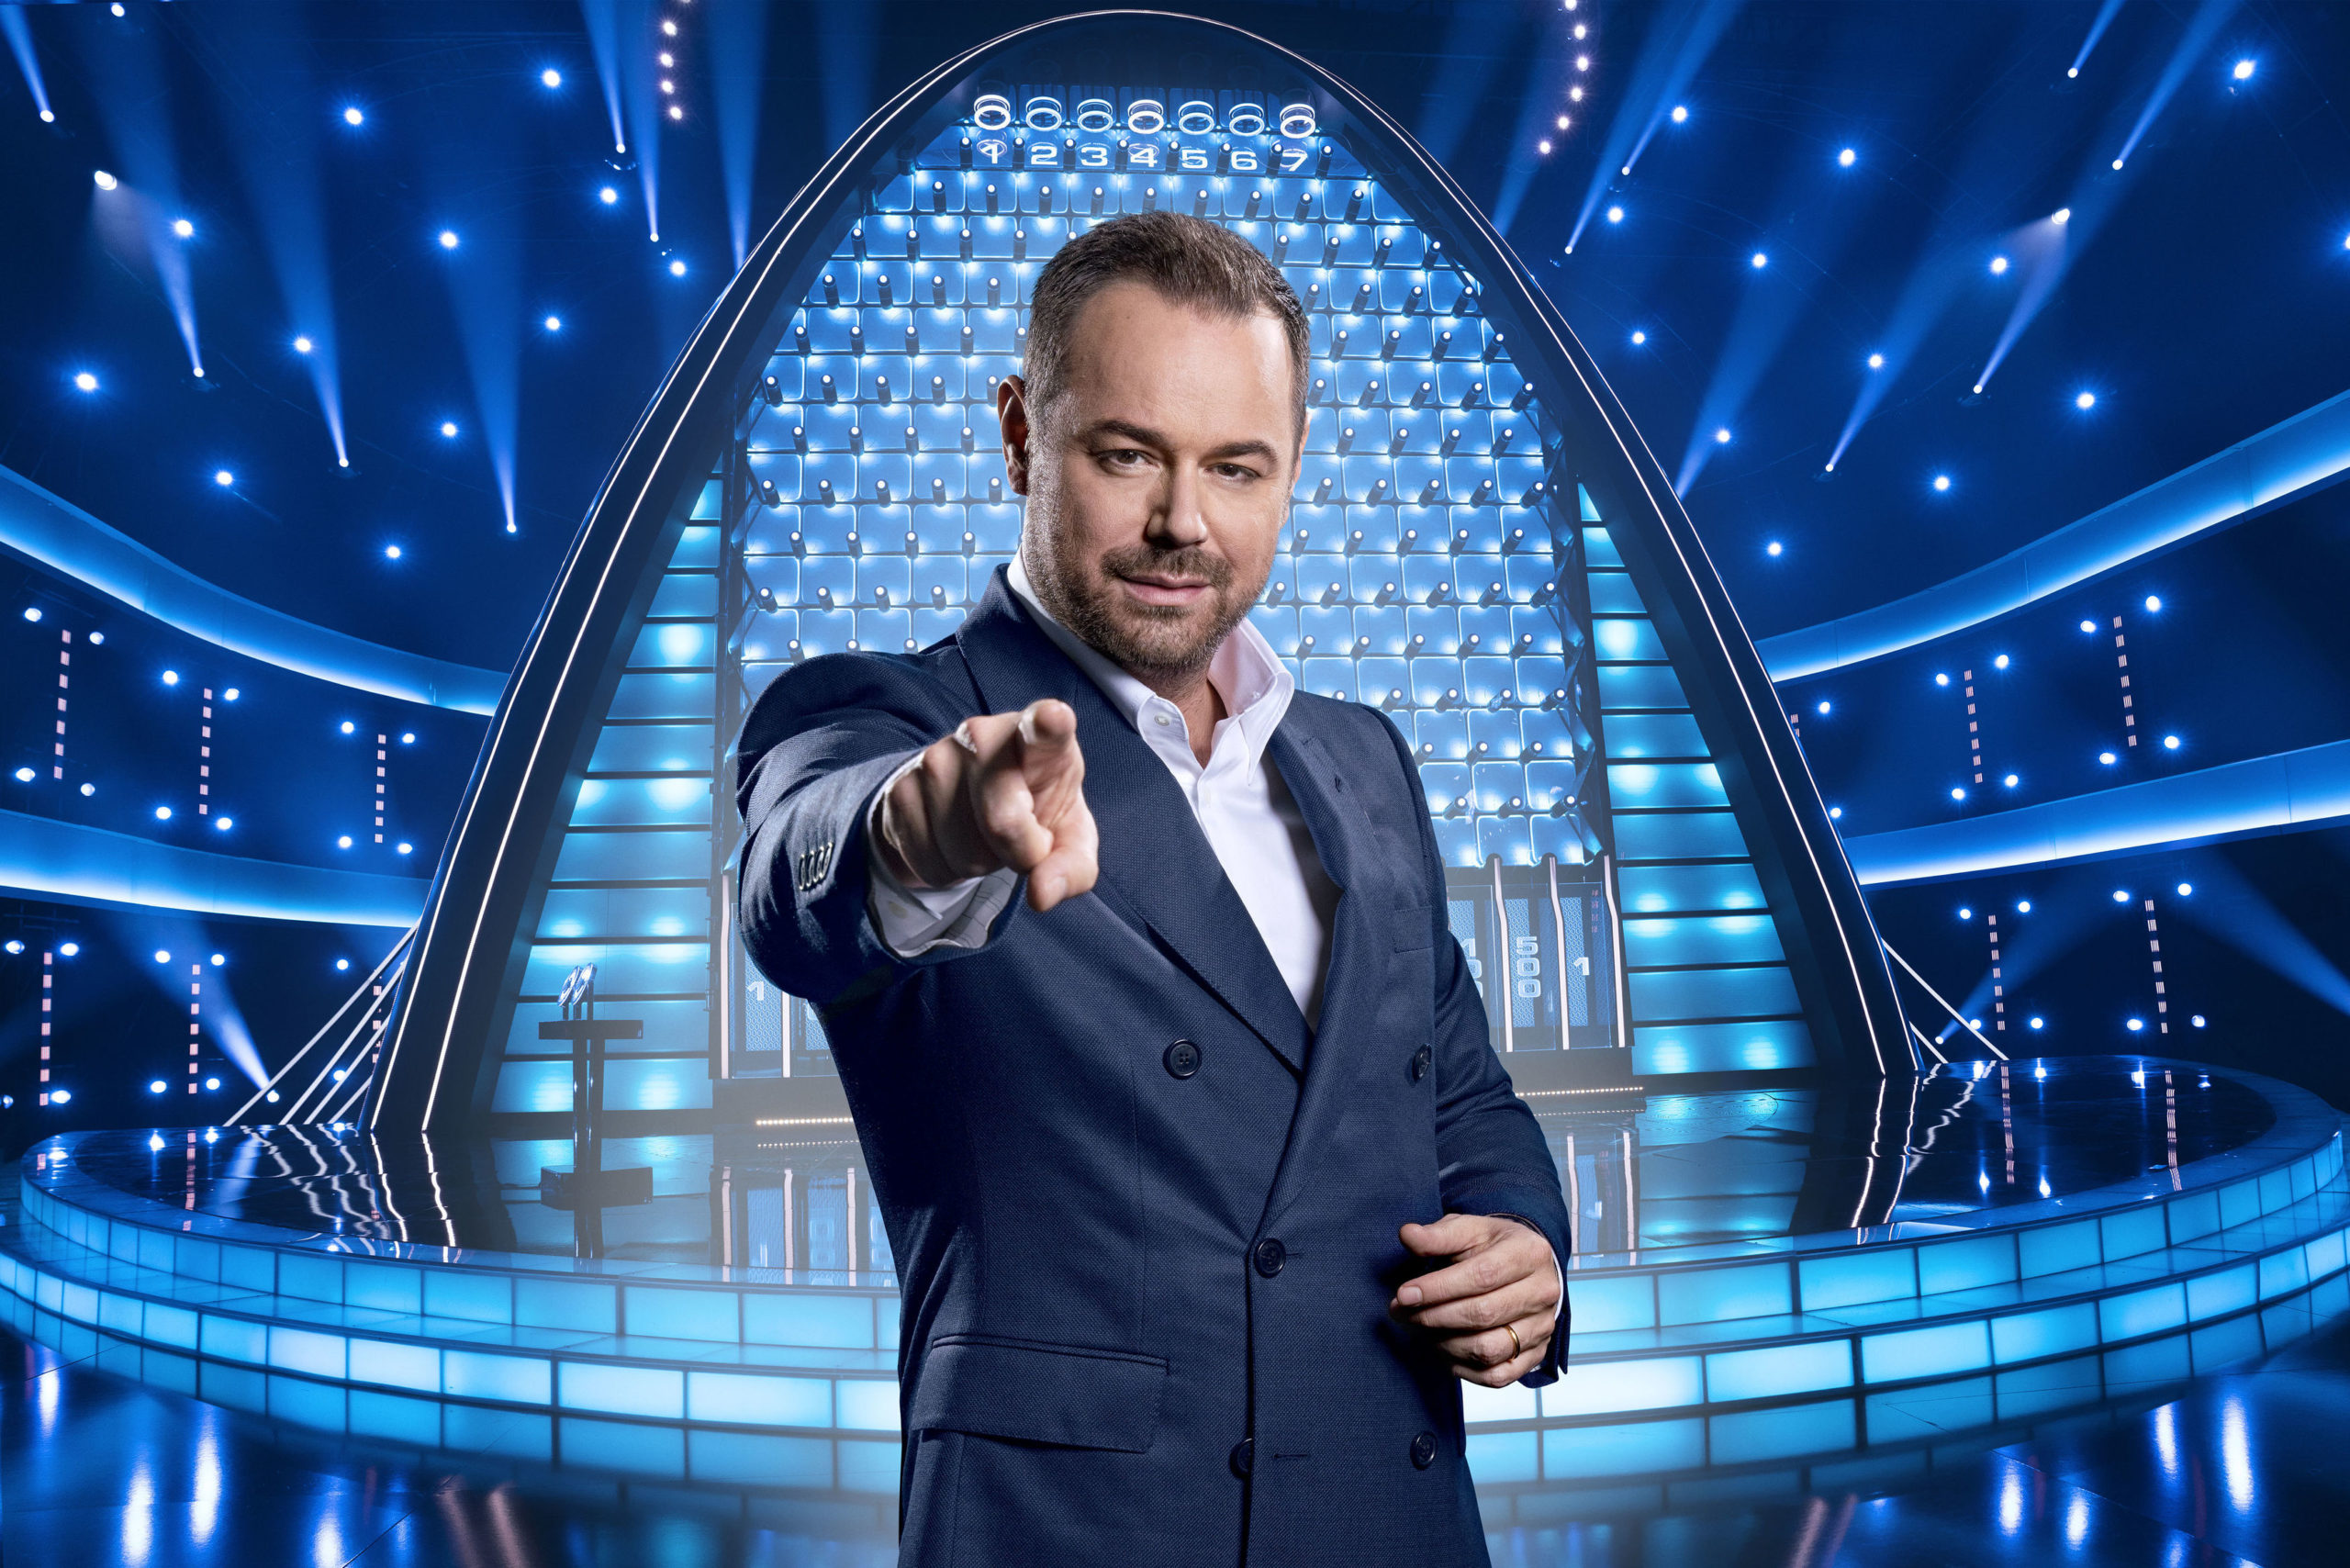 The Wall host Danny Dyer